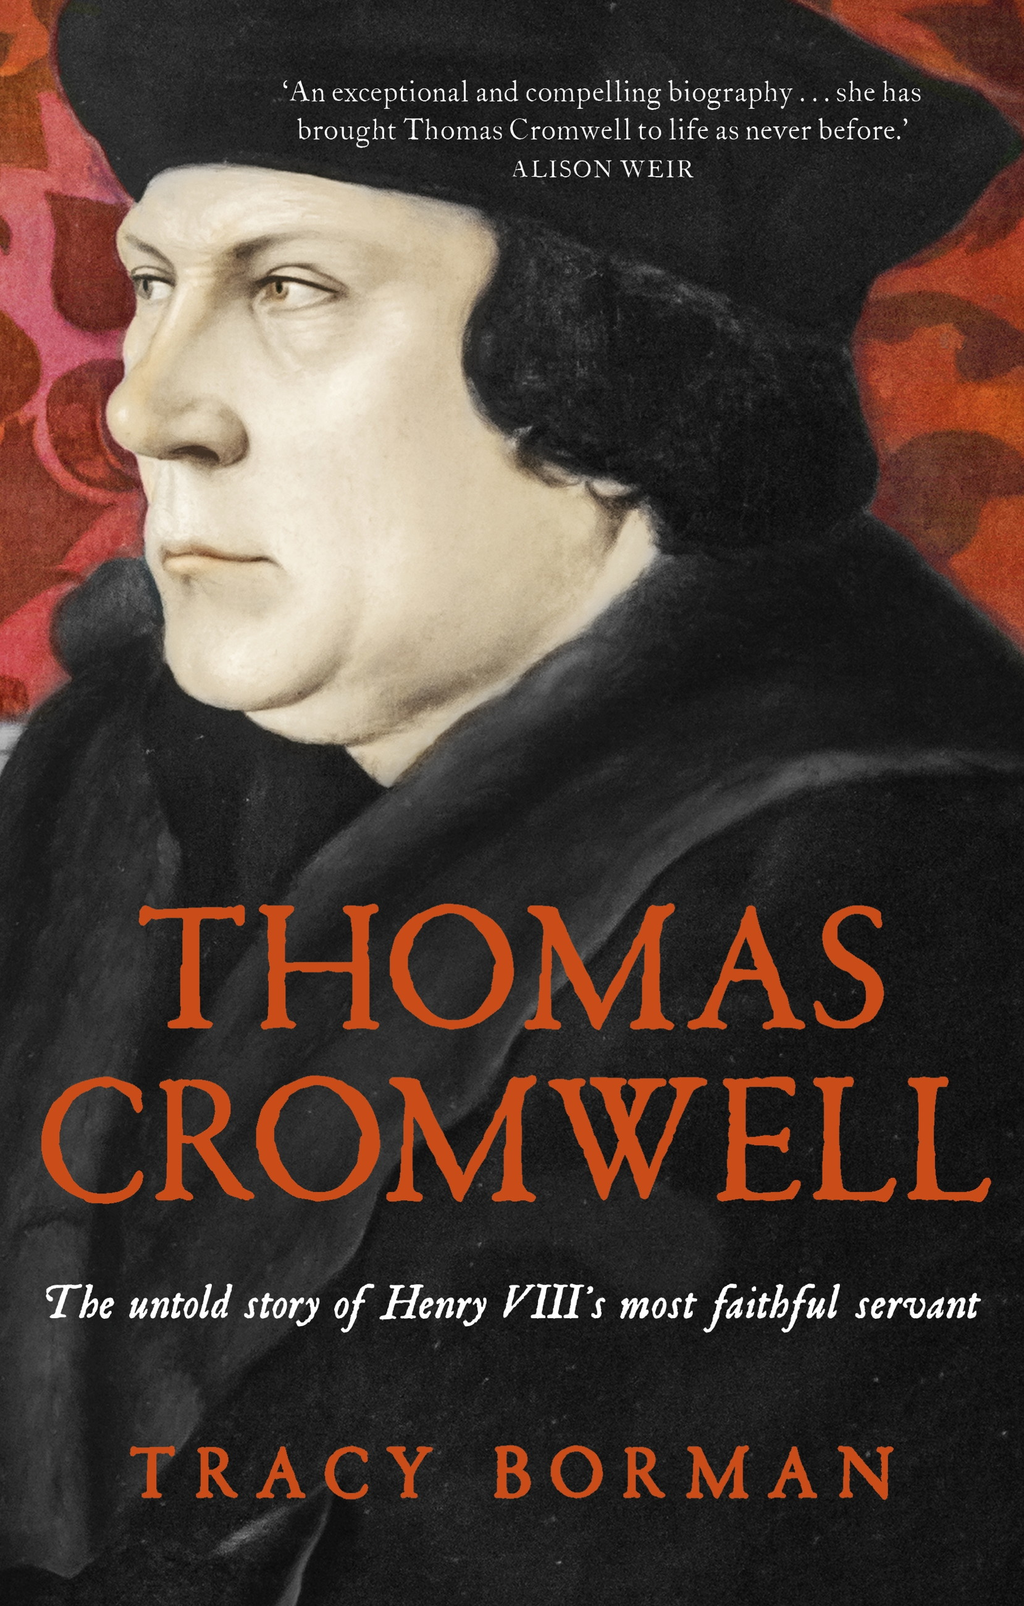 Thomas Cromwell The untold story of Henry VIII's most faithful servant